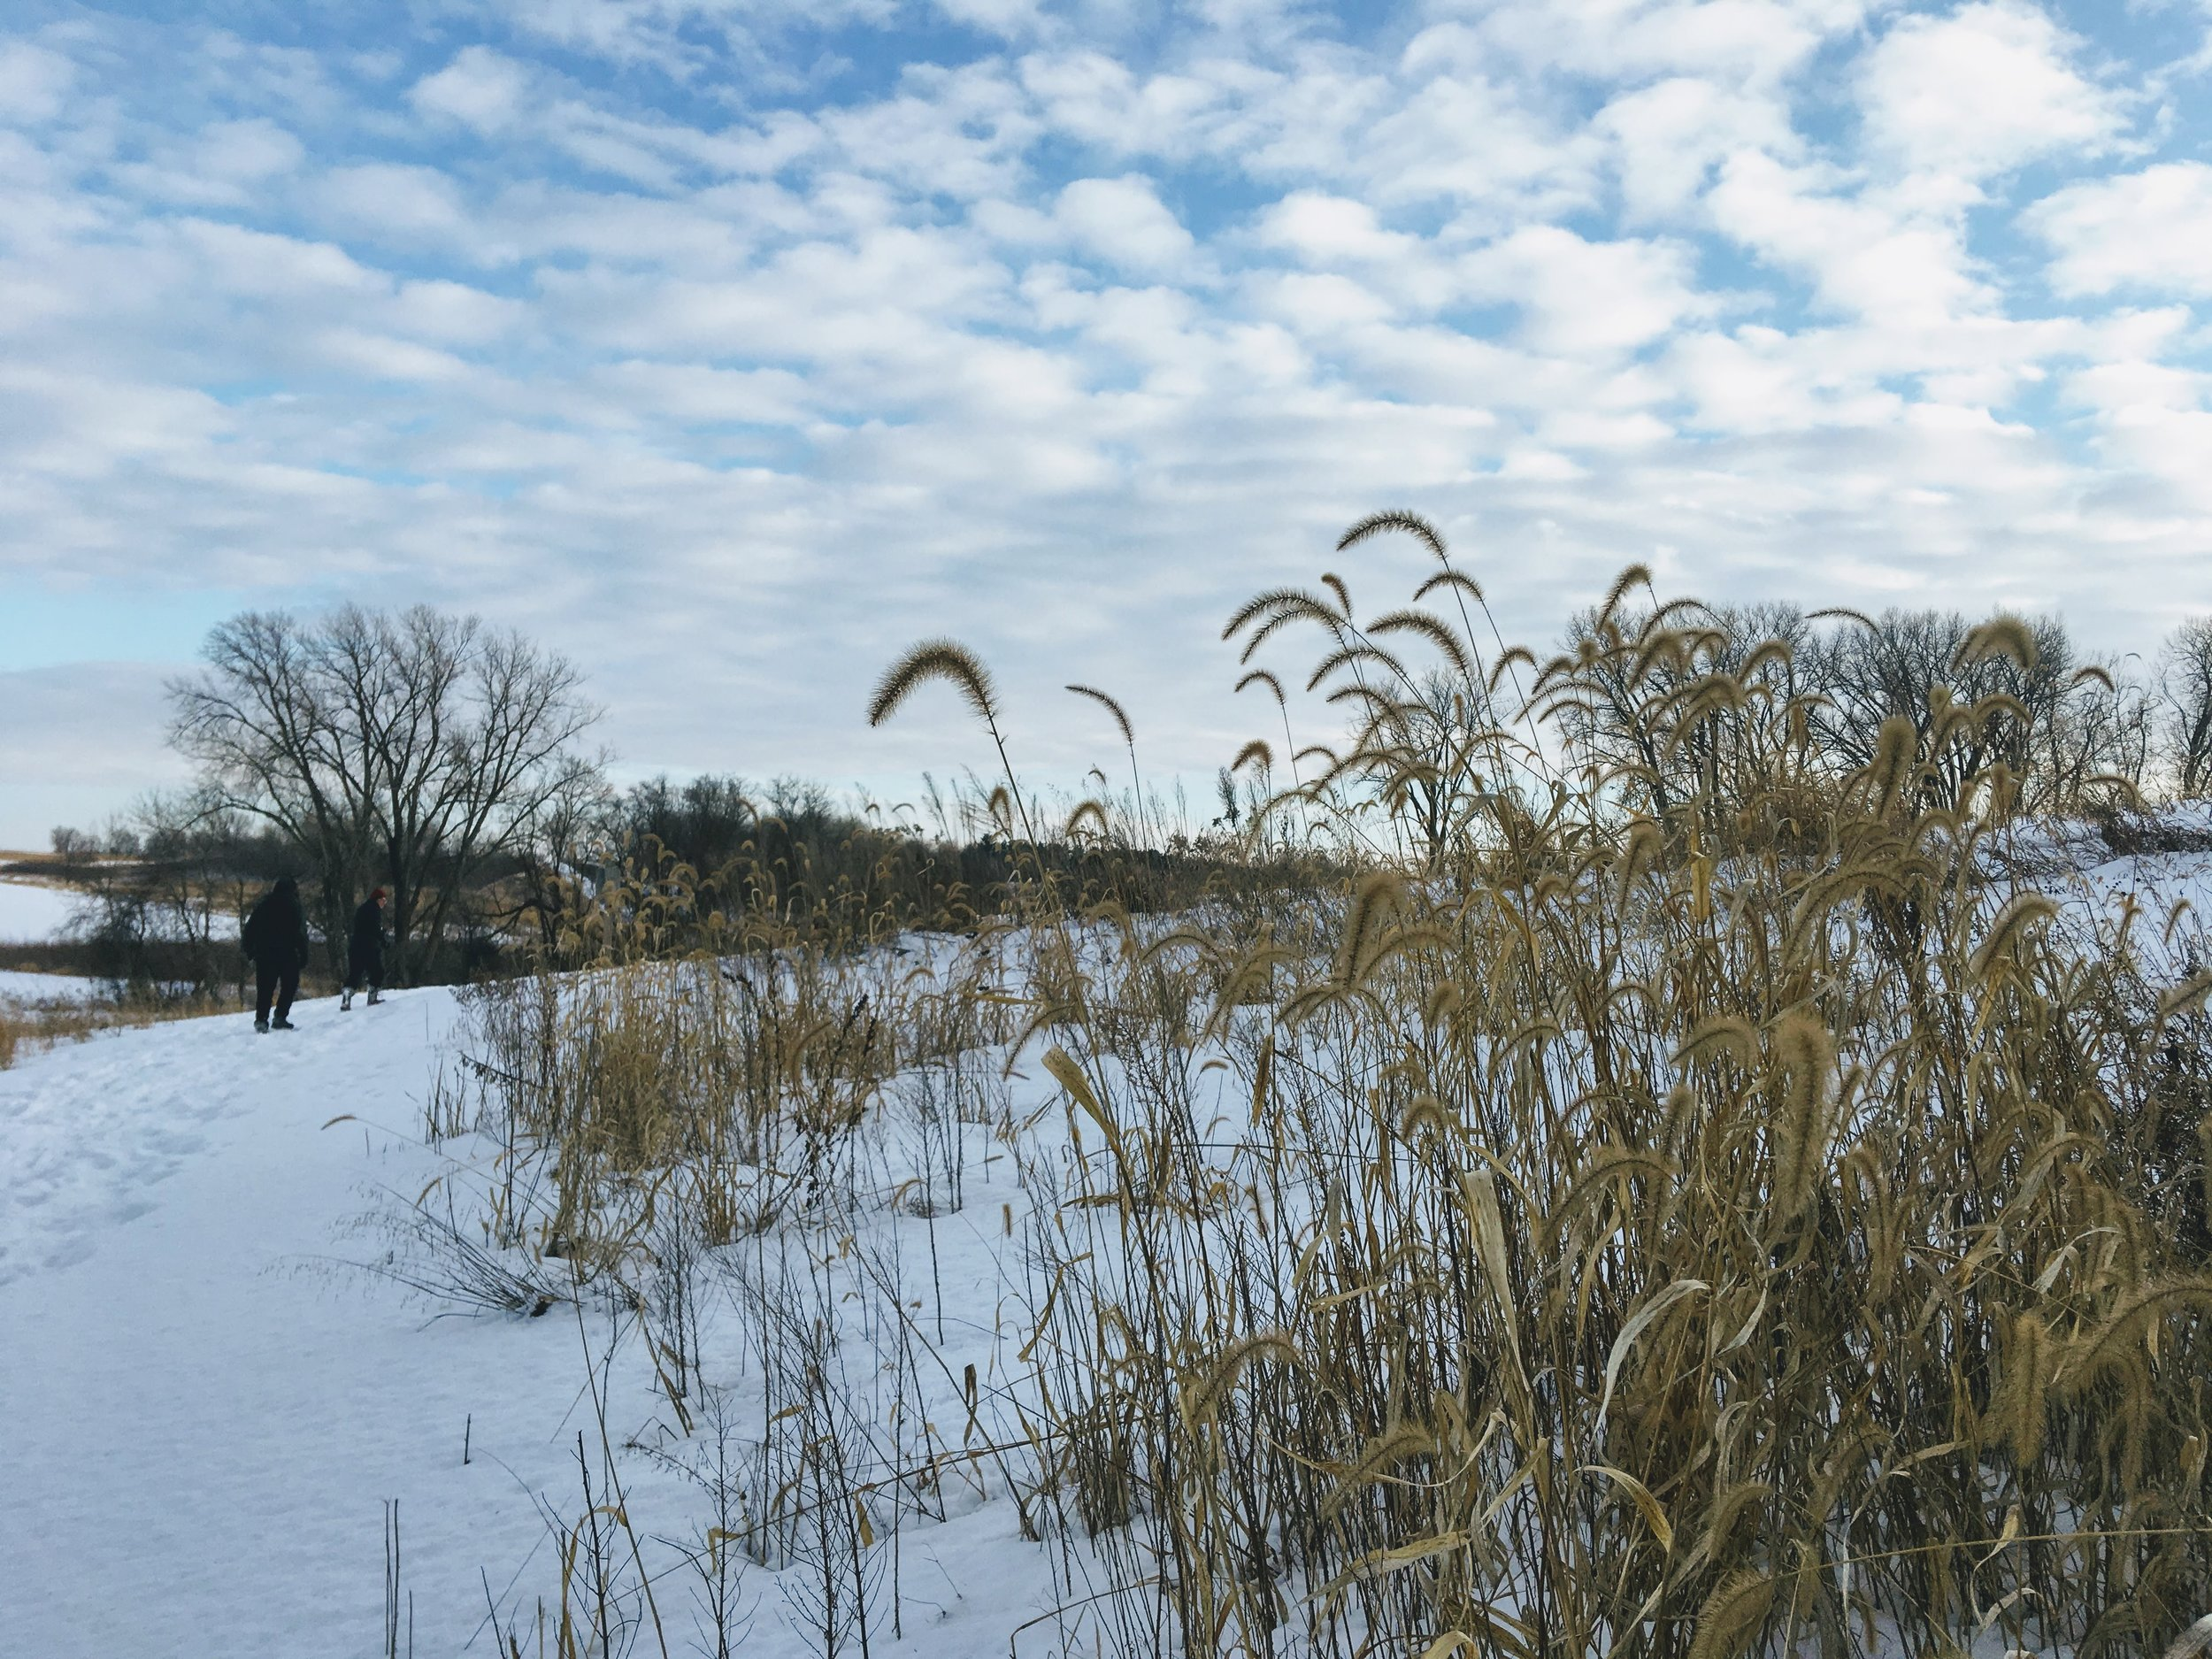 A typical winter landscape in Minnesota.